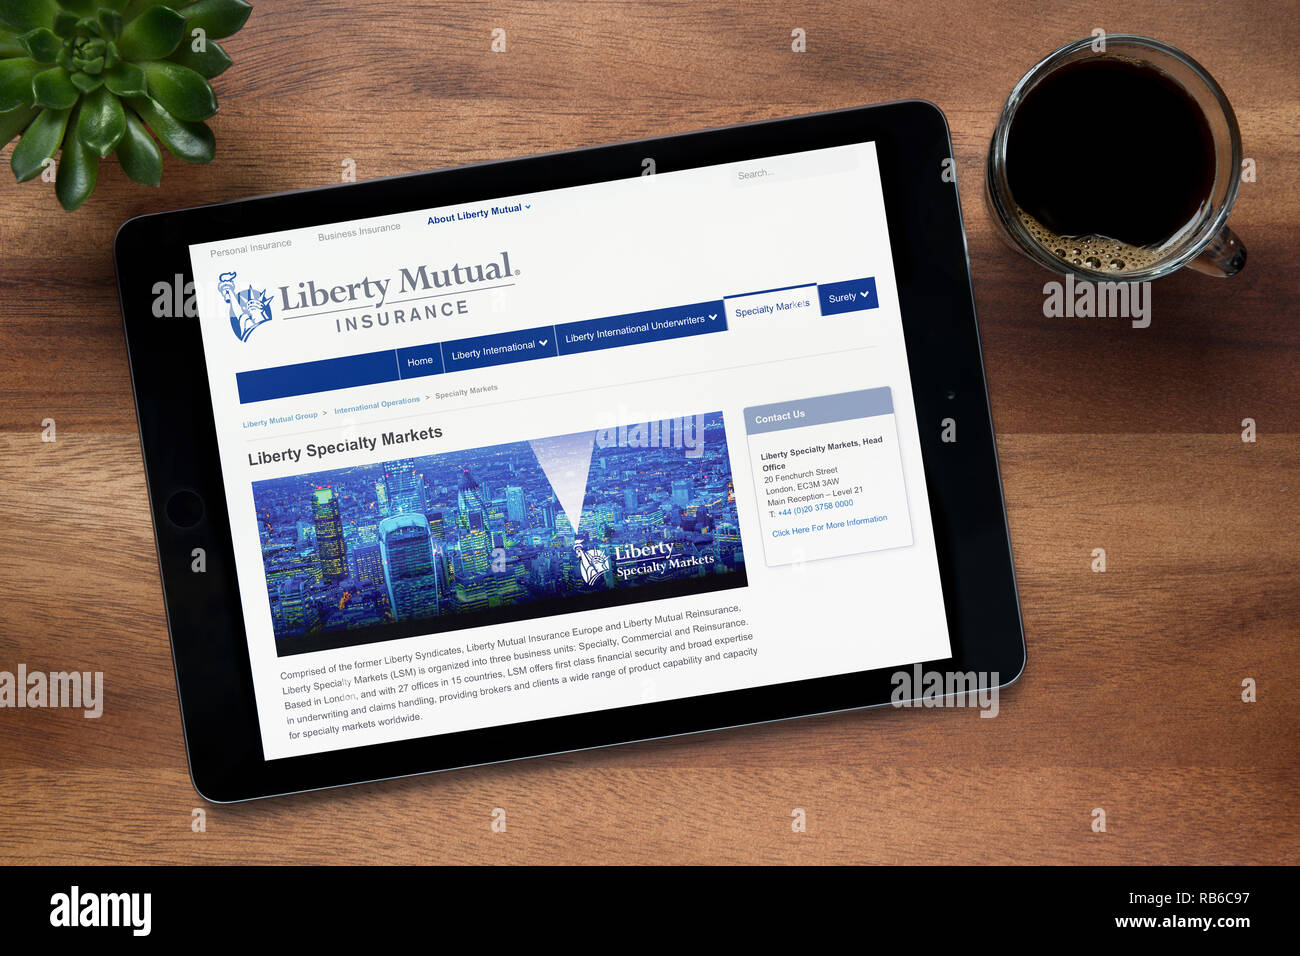 The website of Liberty Mutual insurance is seen on an iPad tablet resting on a wooden table (Editorial use only). - Stock Image